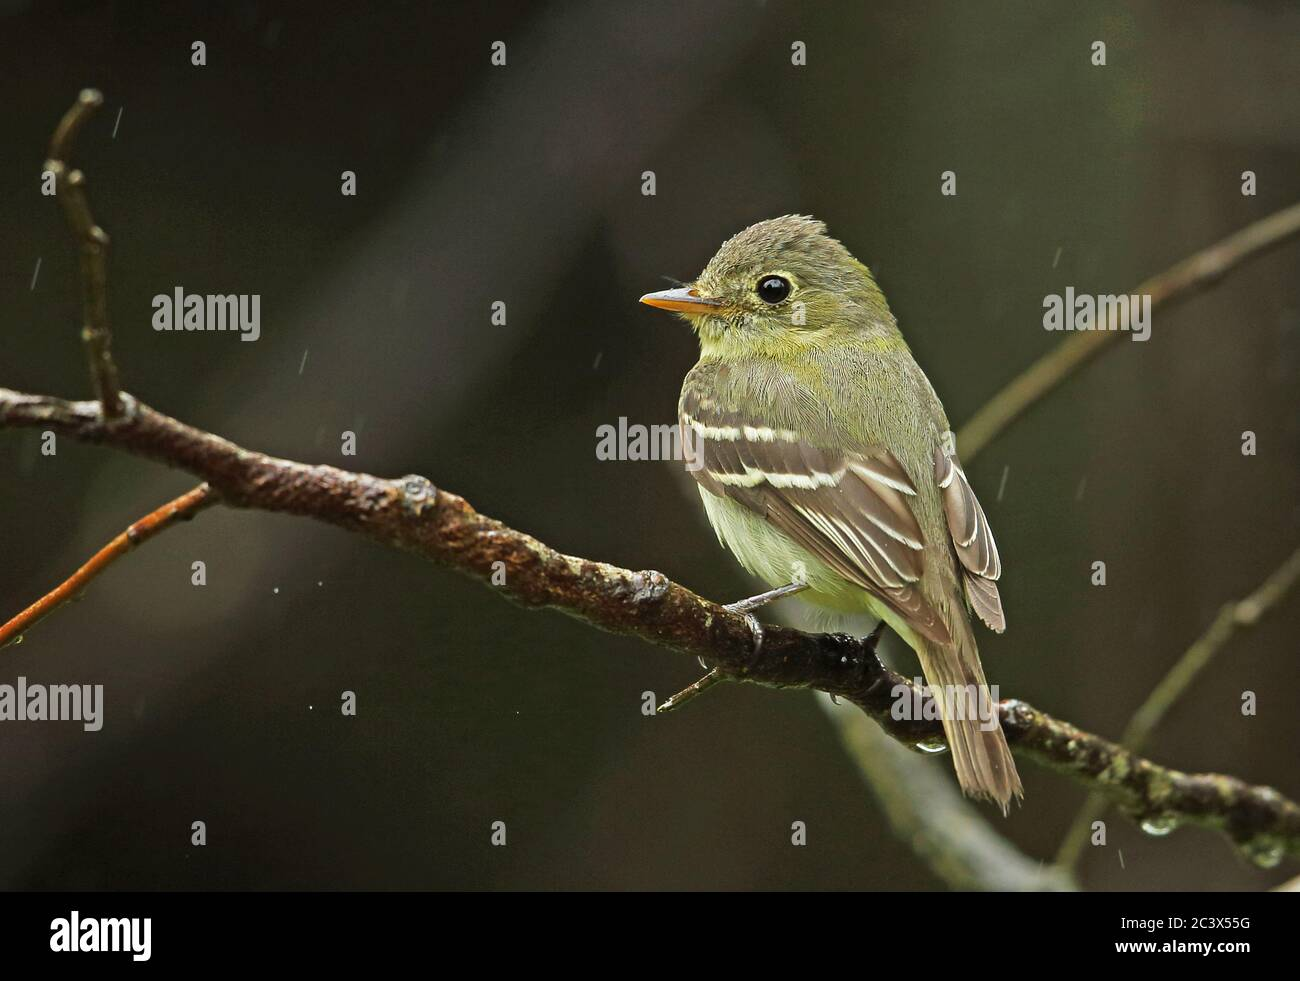 Yellow-bellied Flycatcher (Empidonax flaviventris) adult perched on branch in the rain  Pico Bonito, Honduras      February 2016 Stock Photo